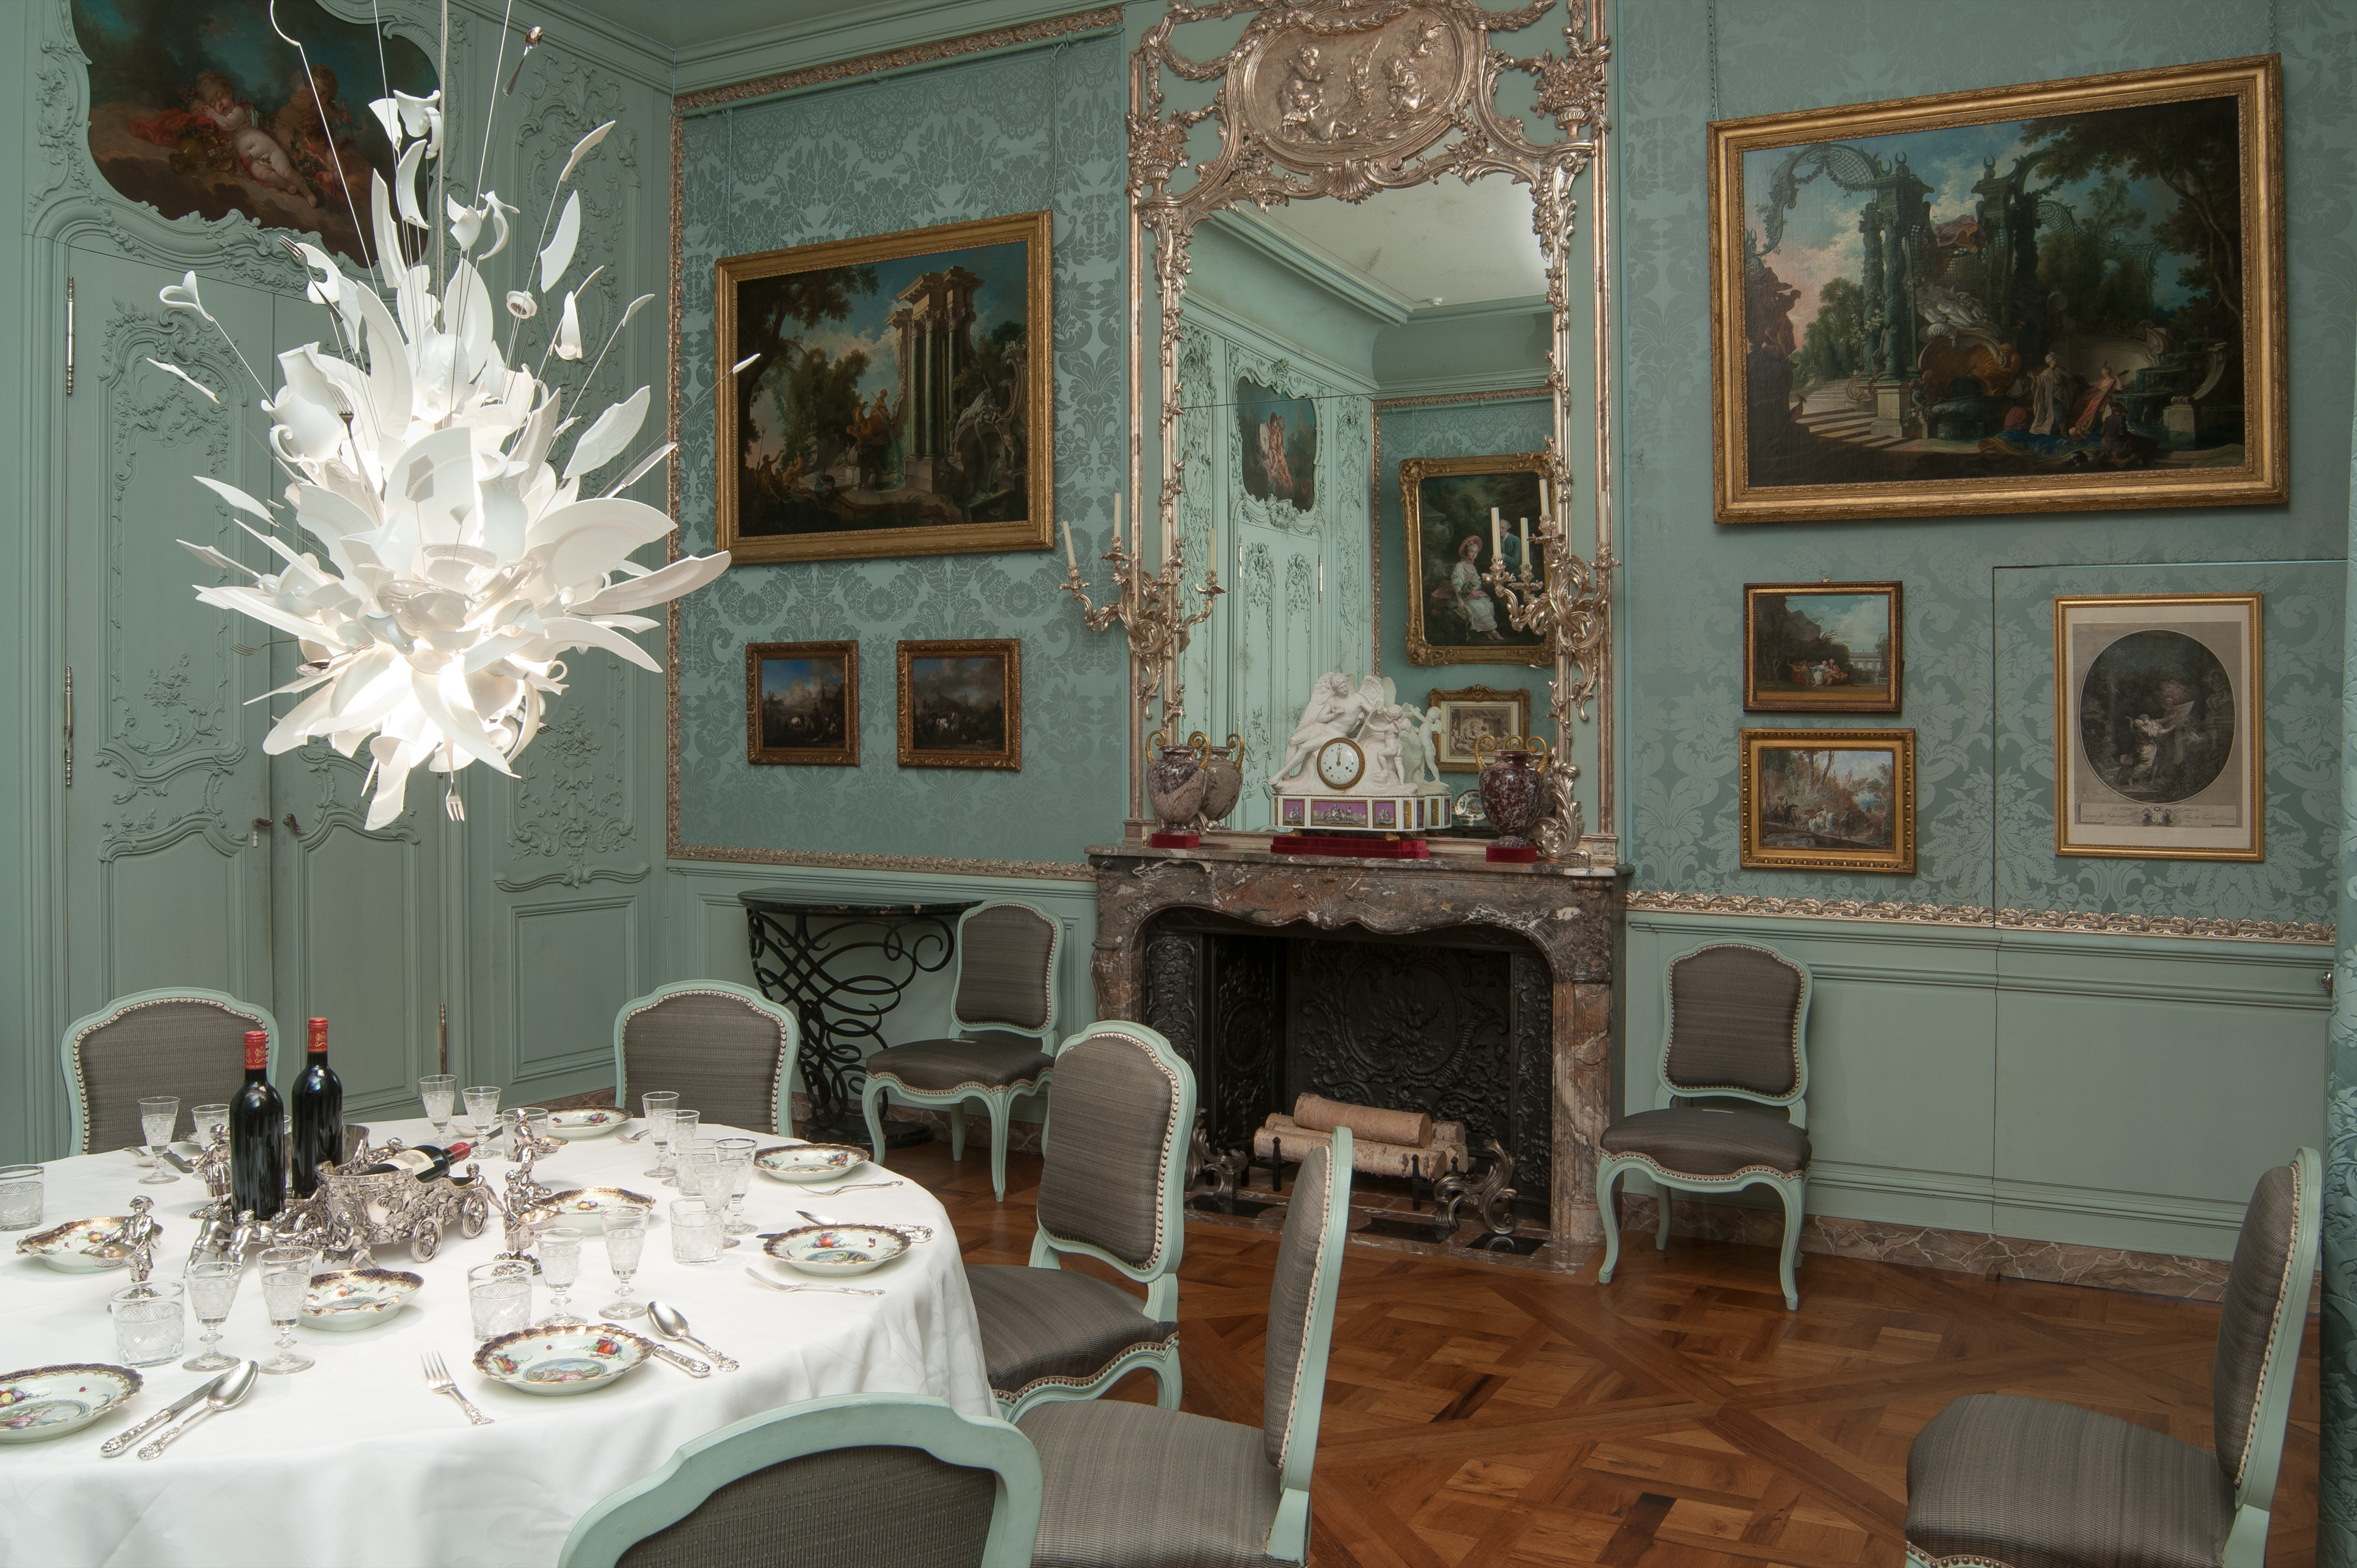 file:blue dining room at waddesdon manor - wikimedia commons